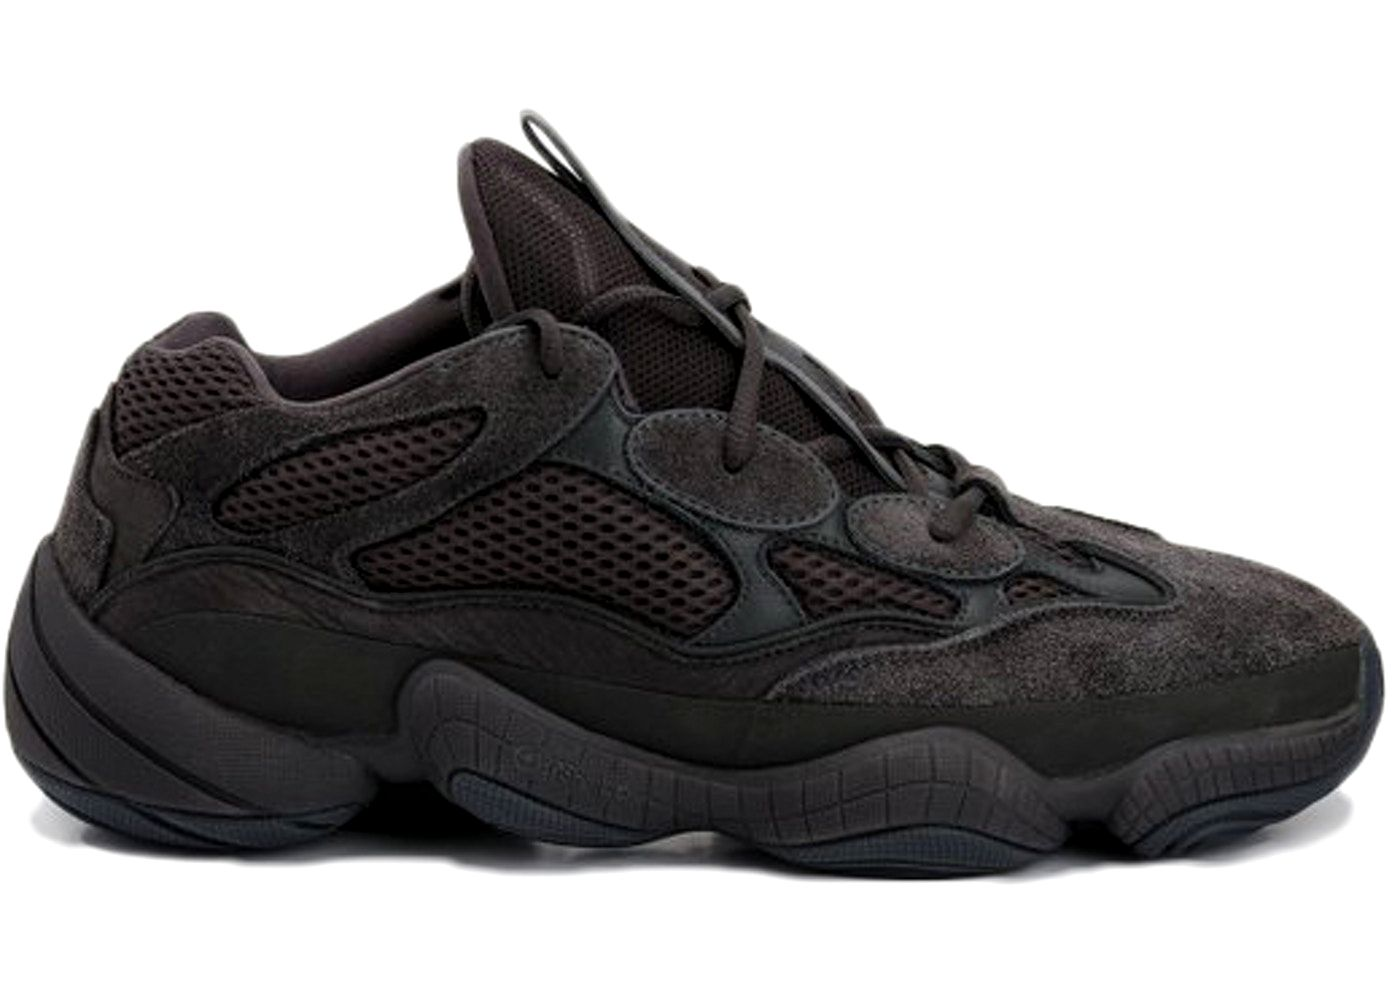 adidas Yeezy 500 Shadow Black (Friends & Family)